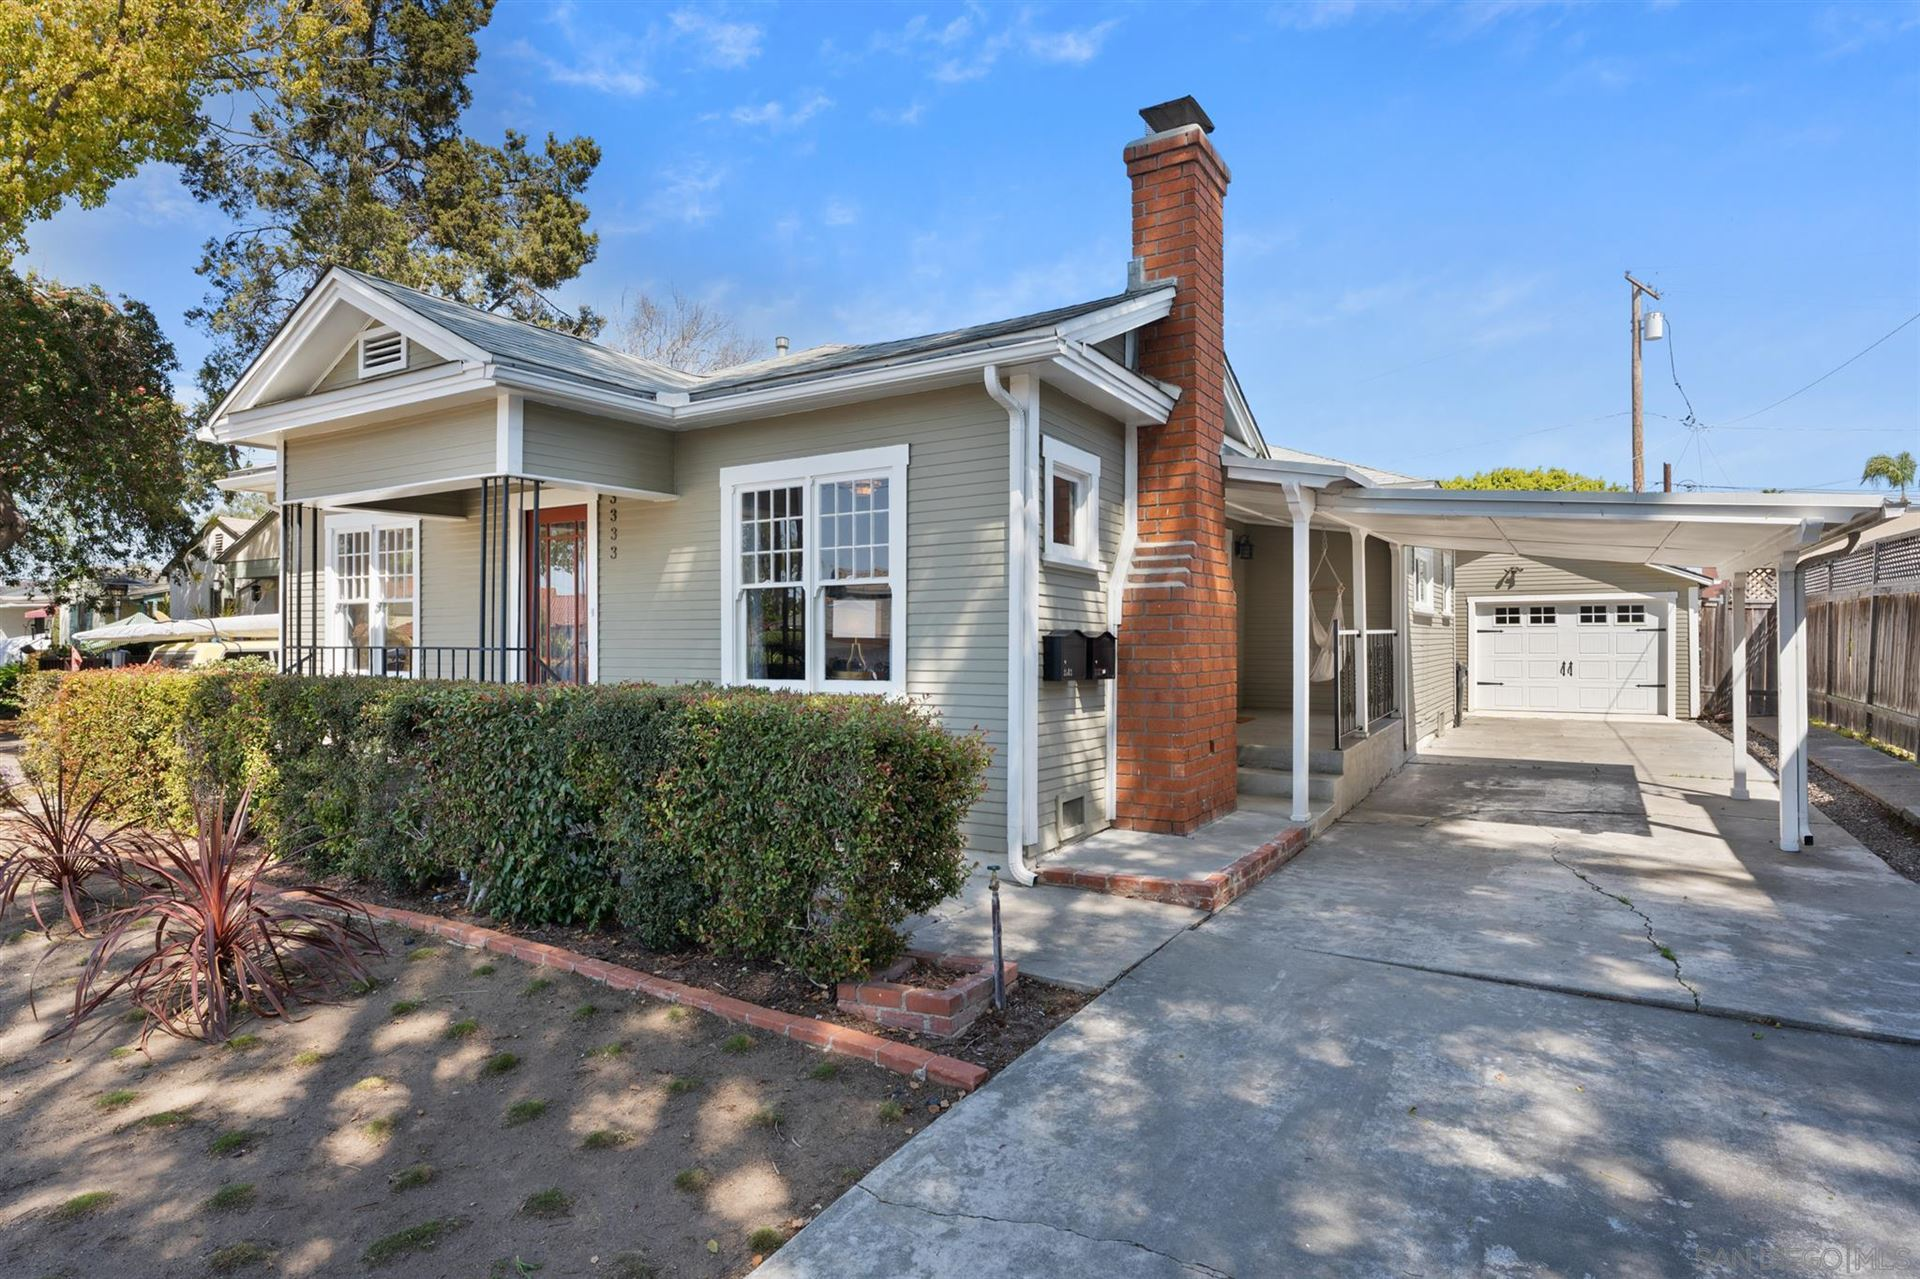 Photo for 3333 N Mountain View Dr, San Diego, CA 92116 (MLS # 210008564)